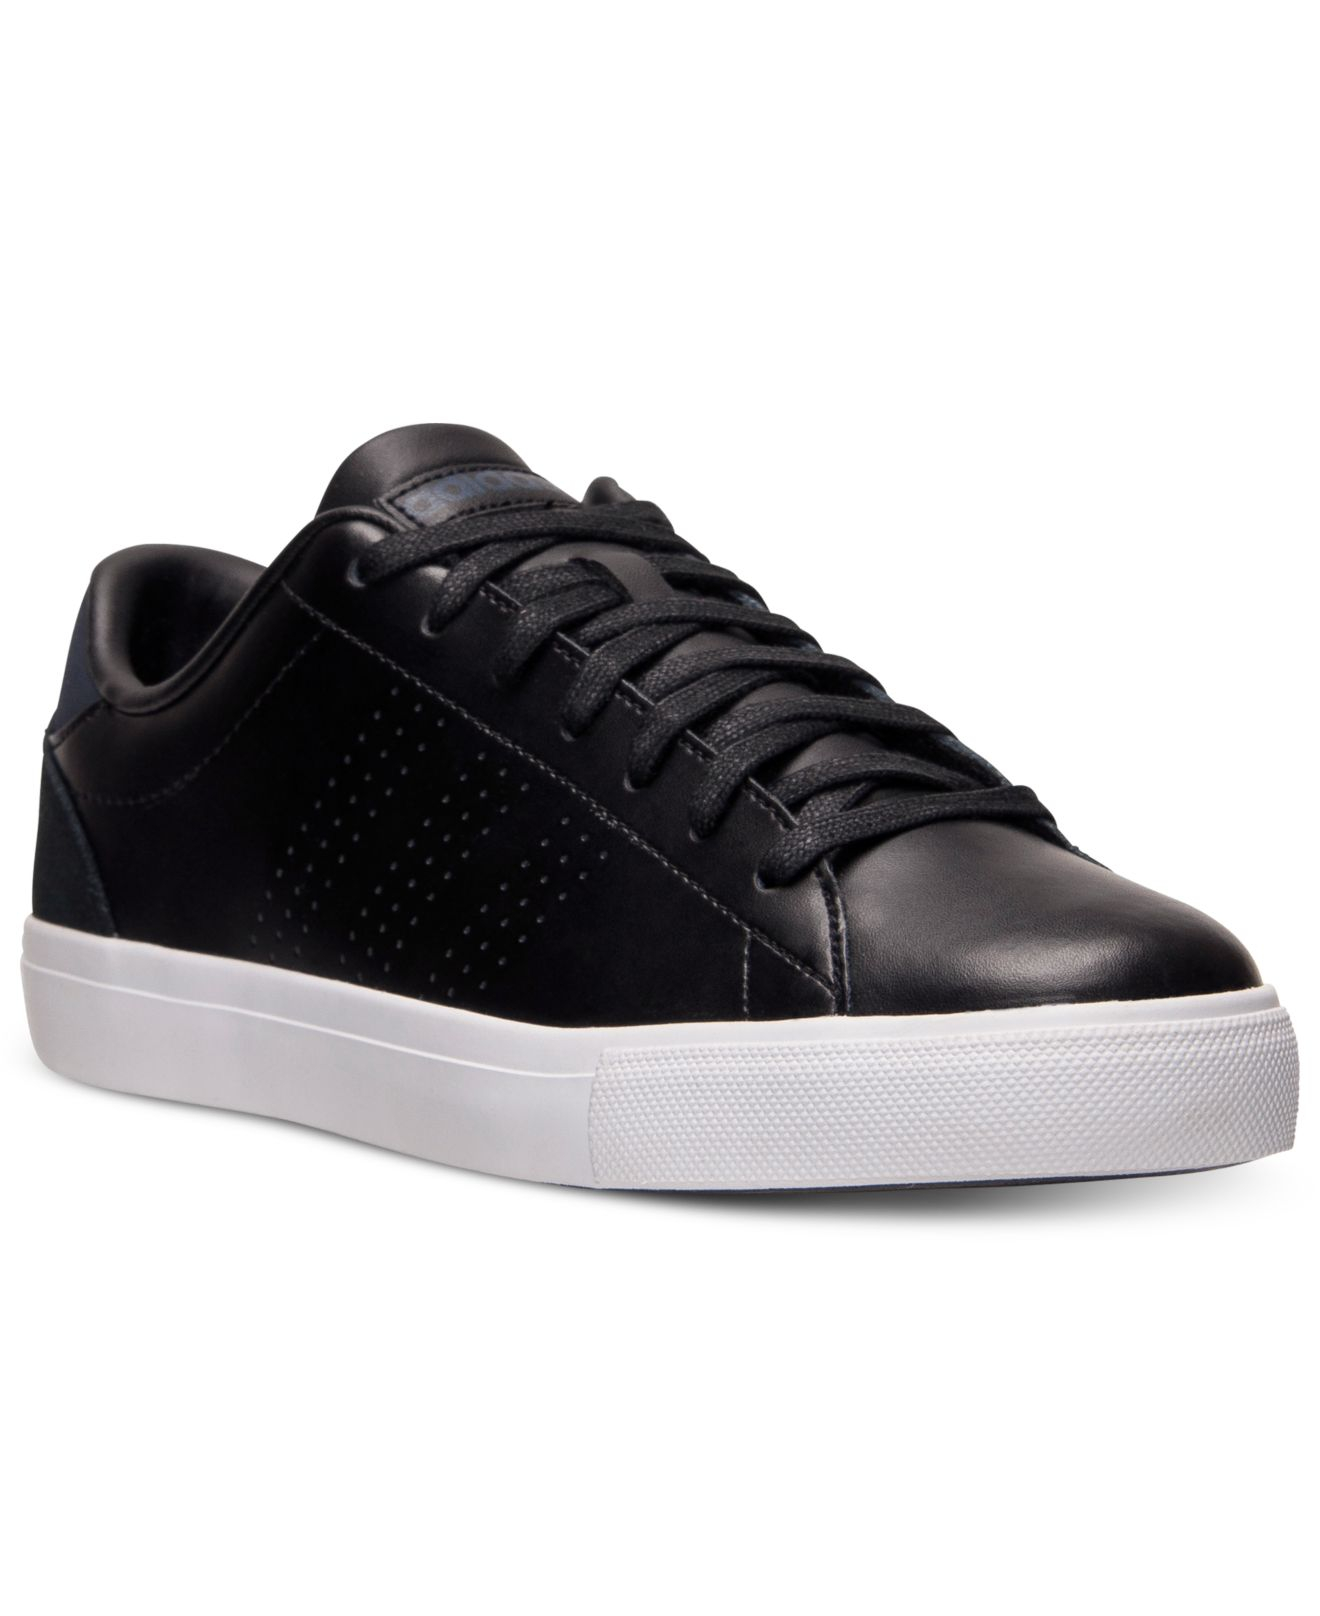 quality design b4ef0 8b694 ... promo code for lyst adidas mens bbneo daily clean casual sneakers from  finish 65f80 ea159